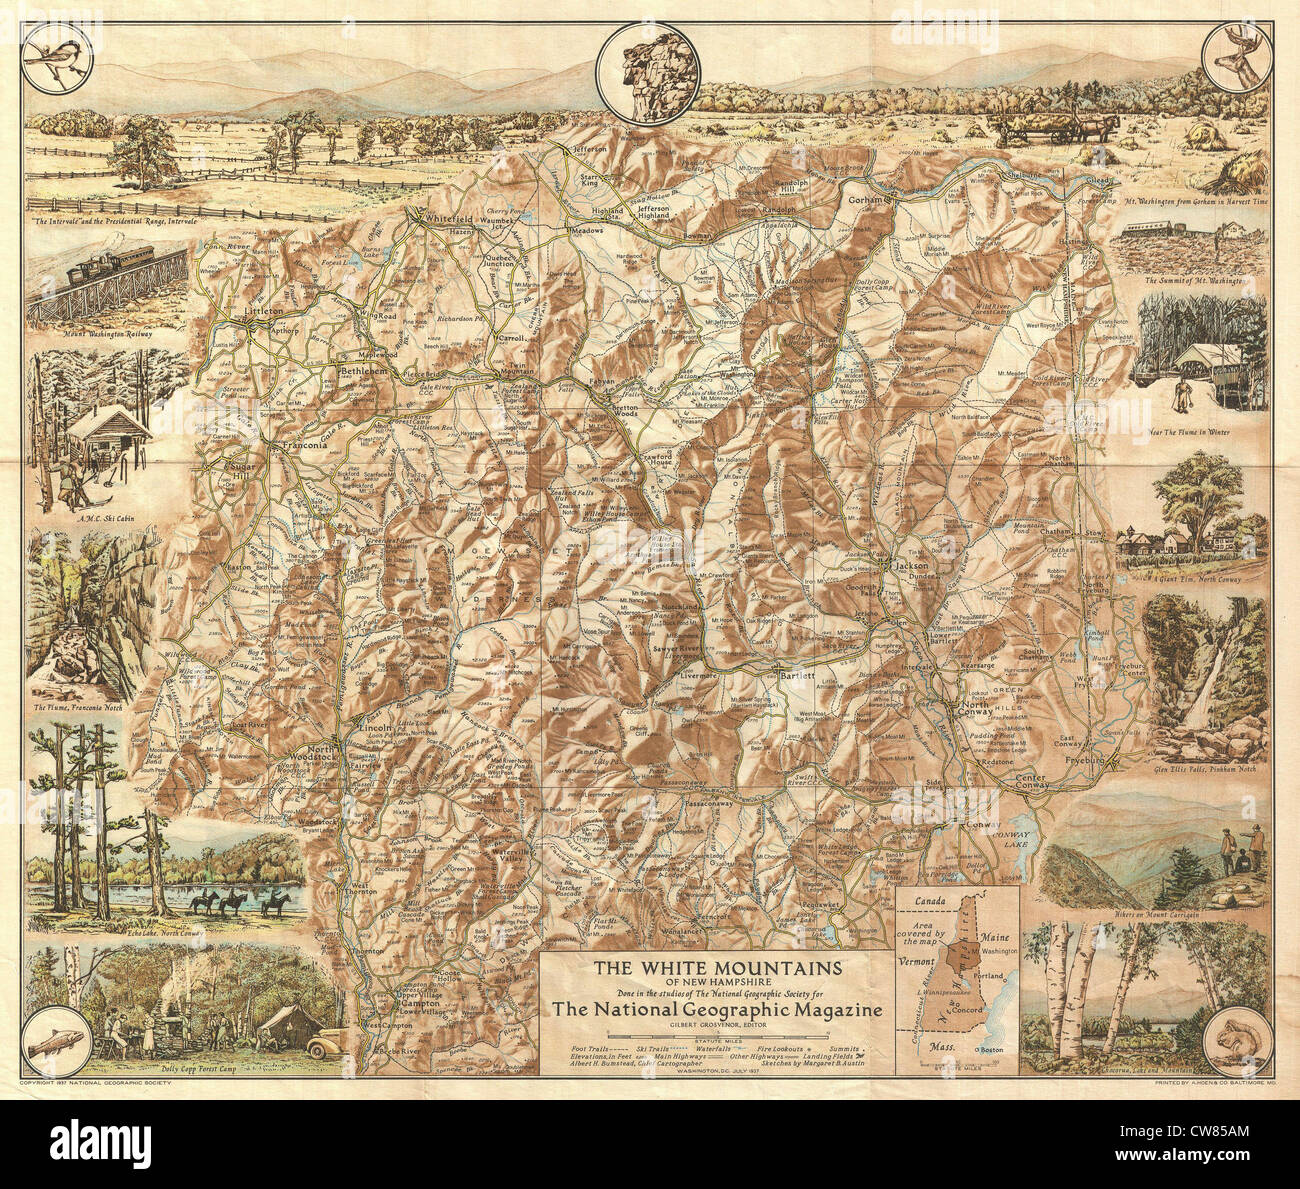 1937 National Geographic Map of the White Mountains - Stock Image